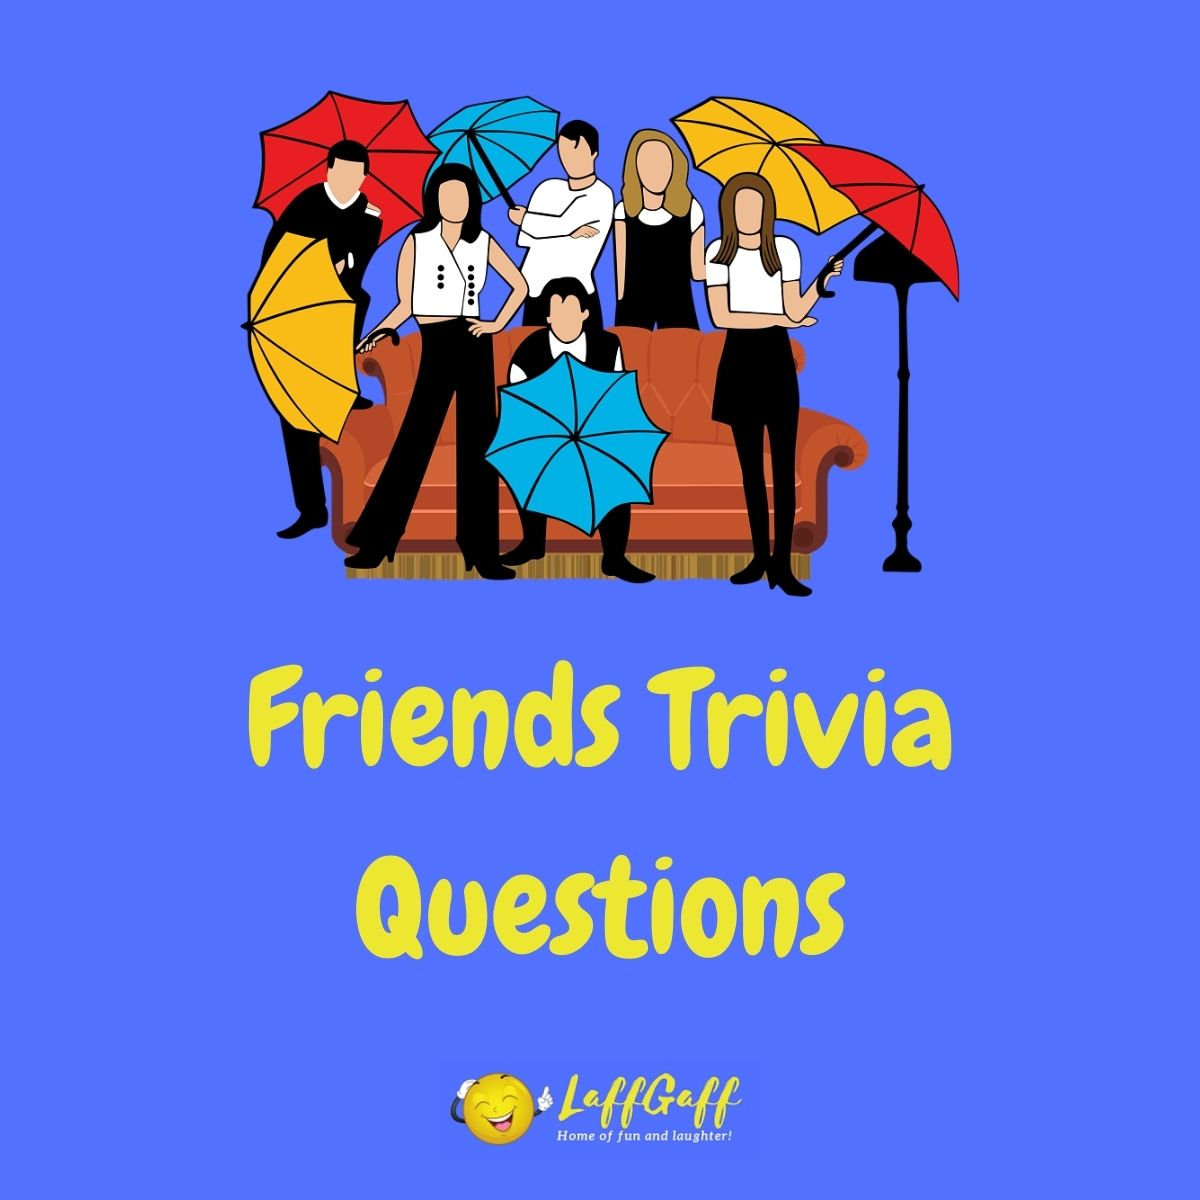 Featured image for a page of Friends trivia questions and answers.